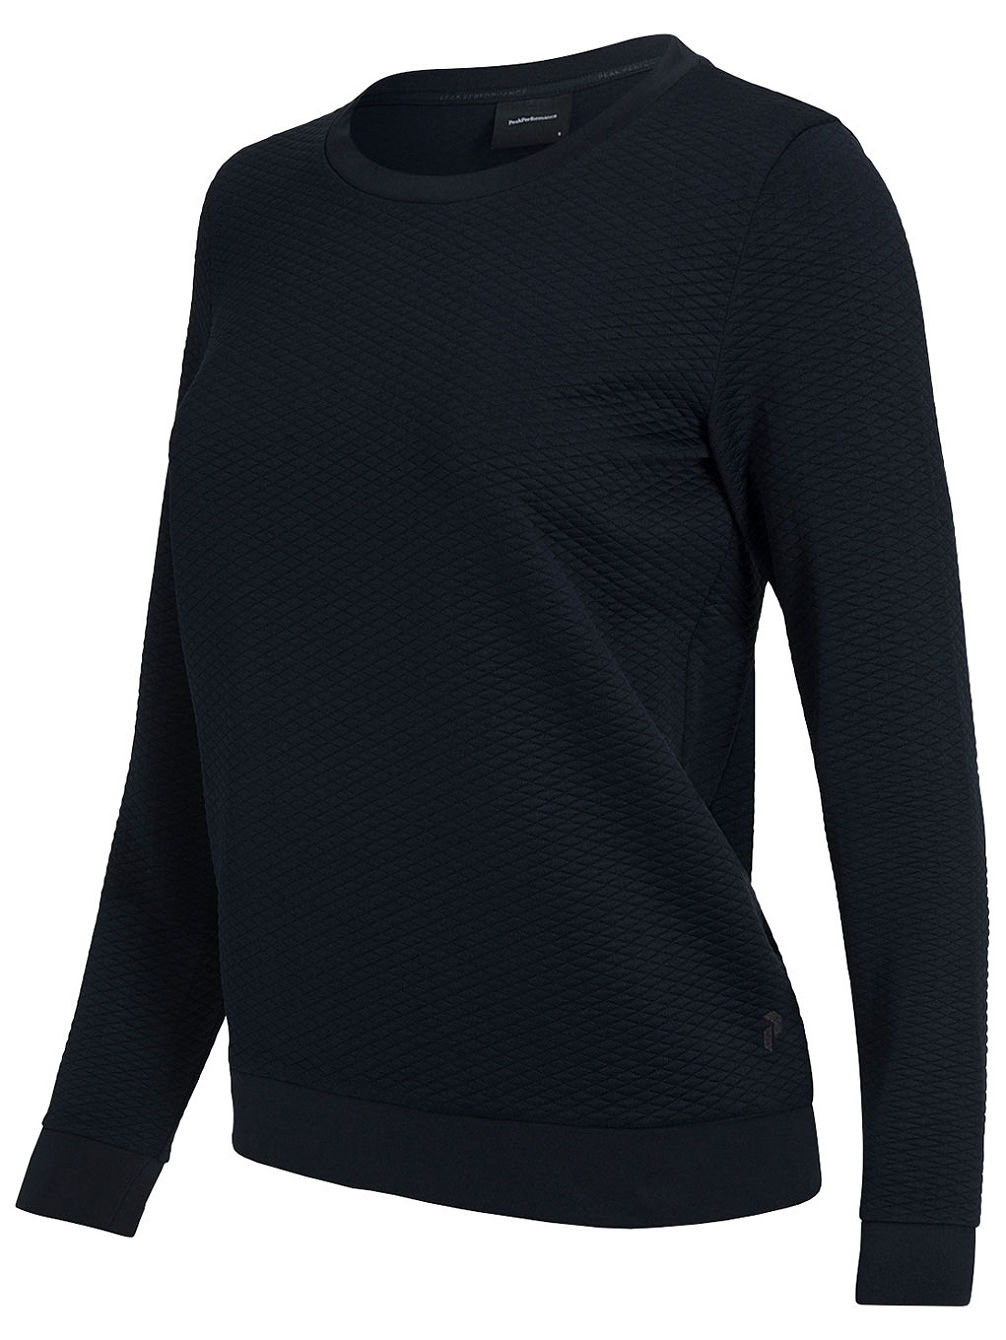 Blackwell Crew Sweater